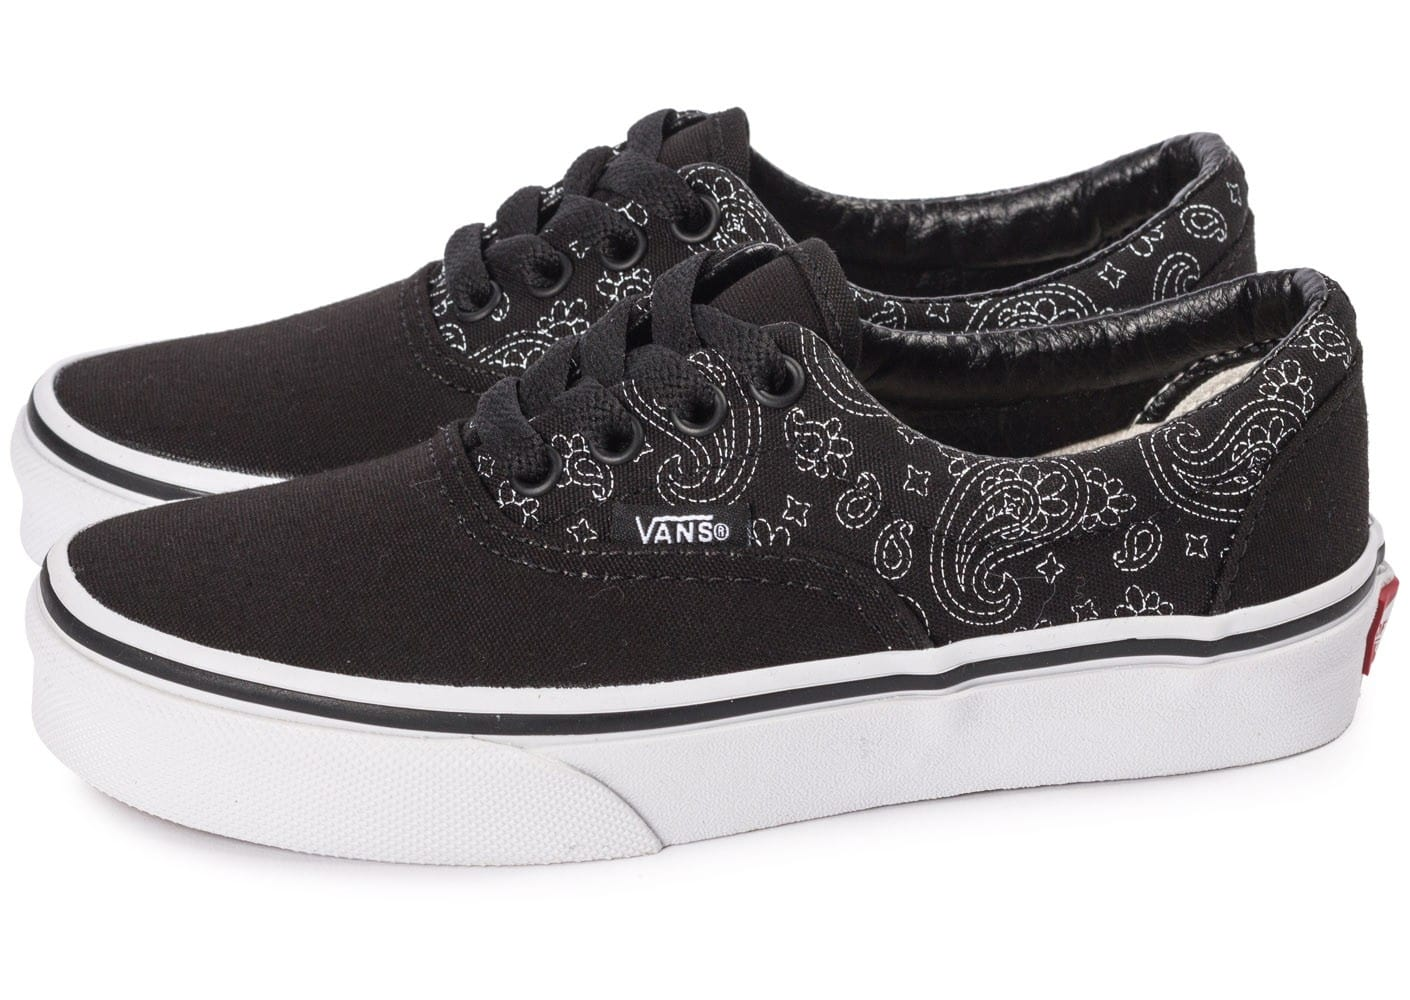 vans era bandana enfant noire chaussures chaussures chausport. Black Bedroom Furniture Sets. Home Design Ideas